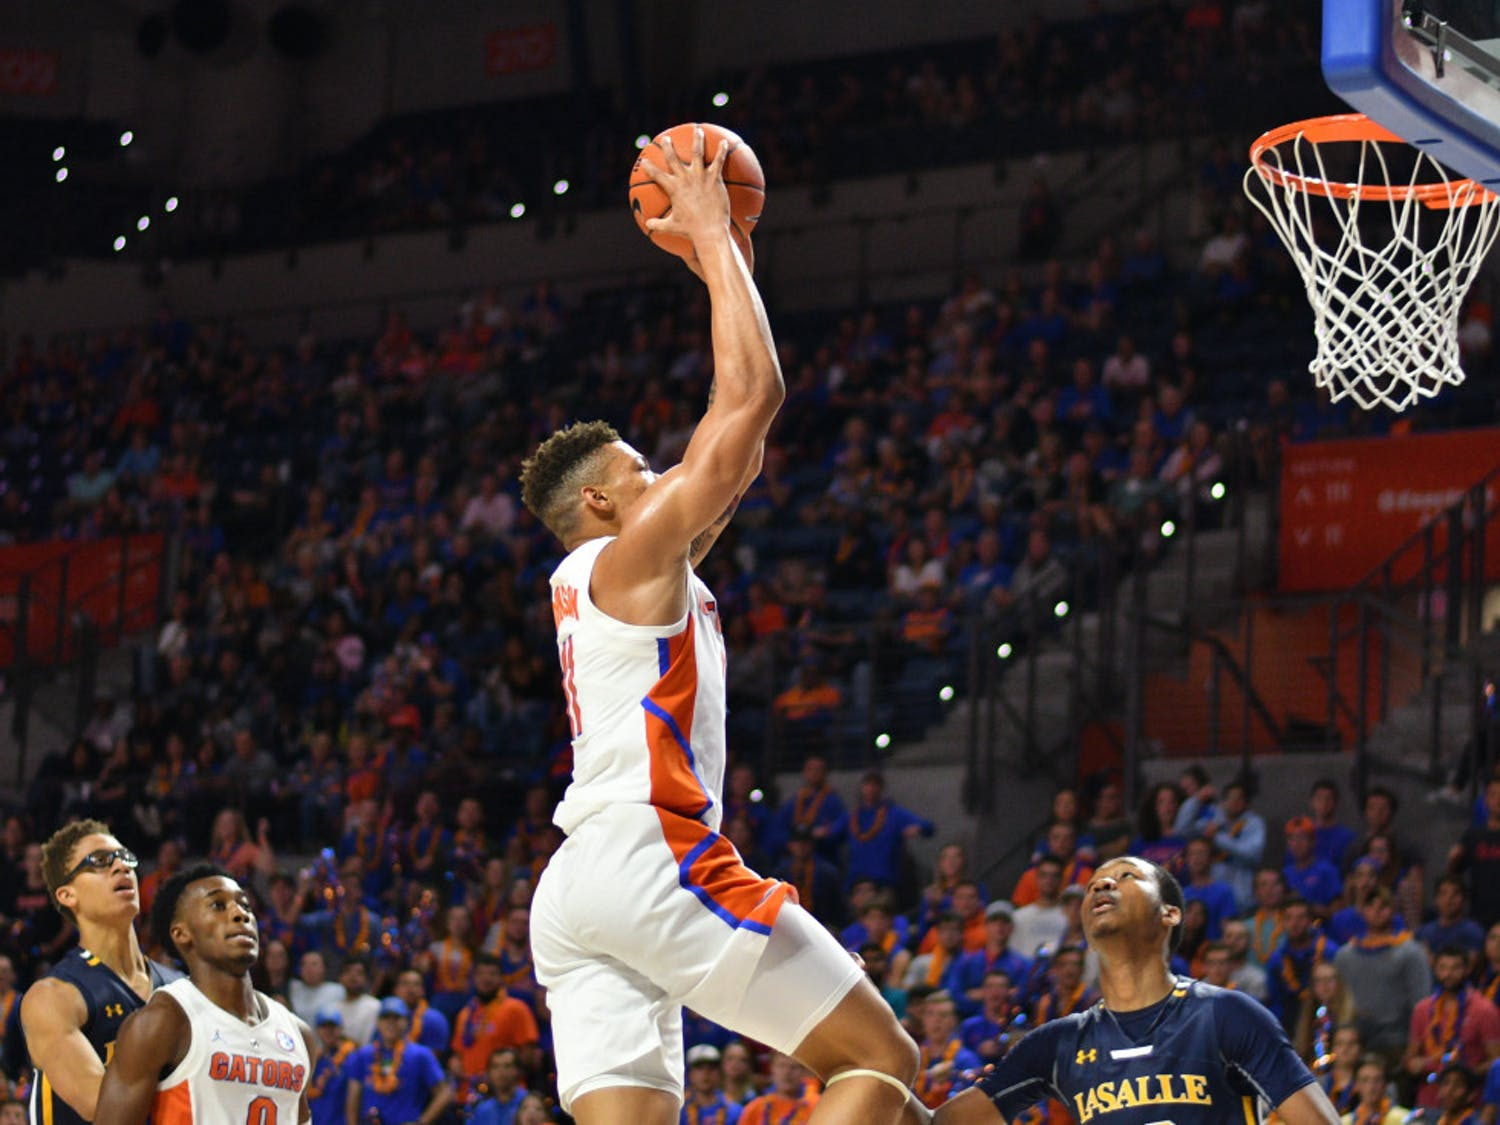 Forward Keyontae Johnson elevates for his thundering dunk against La Salle with 13:40 in the second half. He finished UF's 82-69 victory with 12 points and three rebounds.